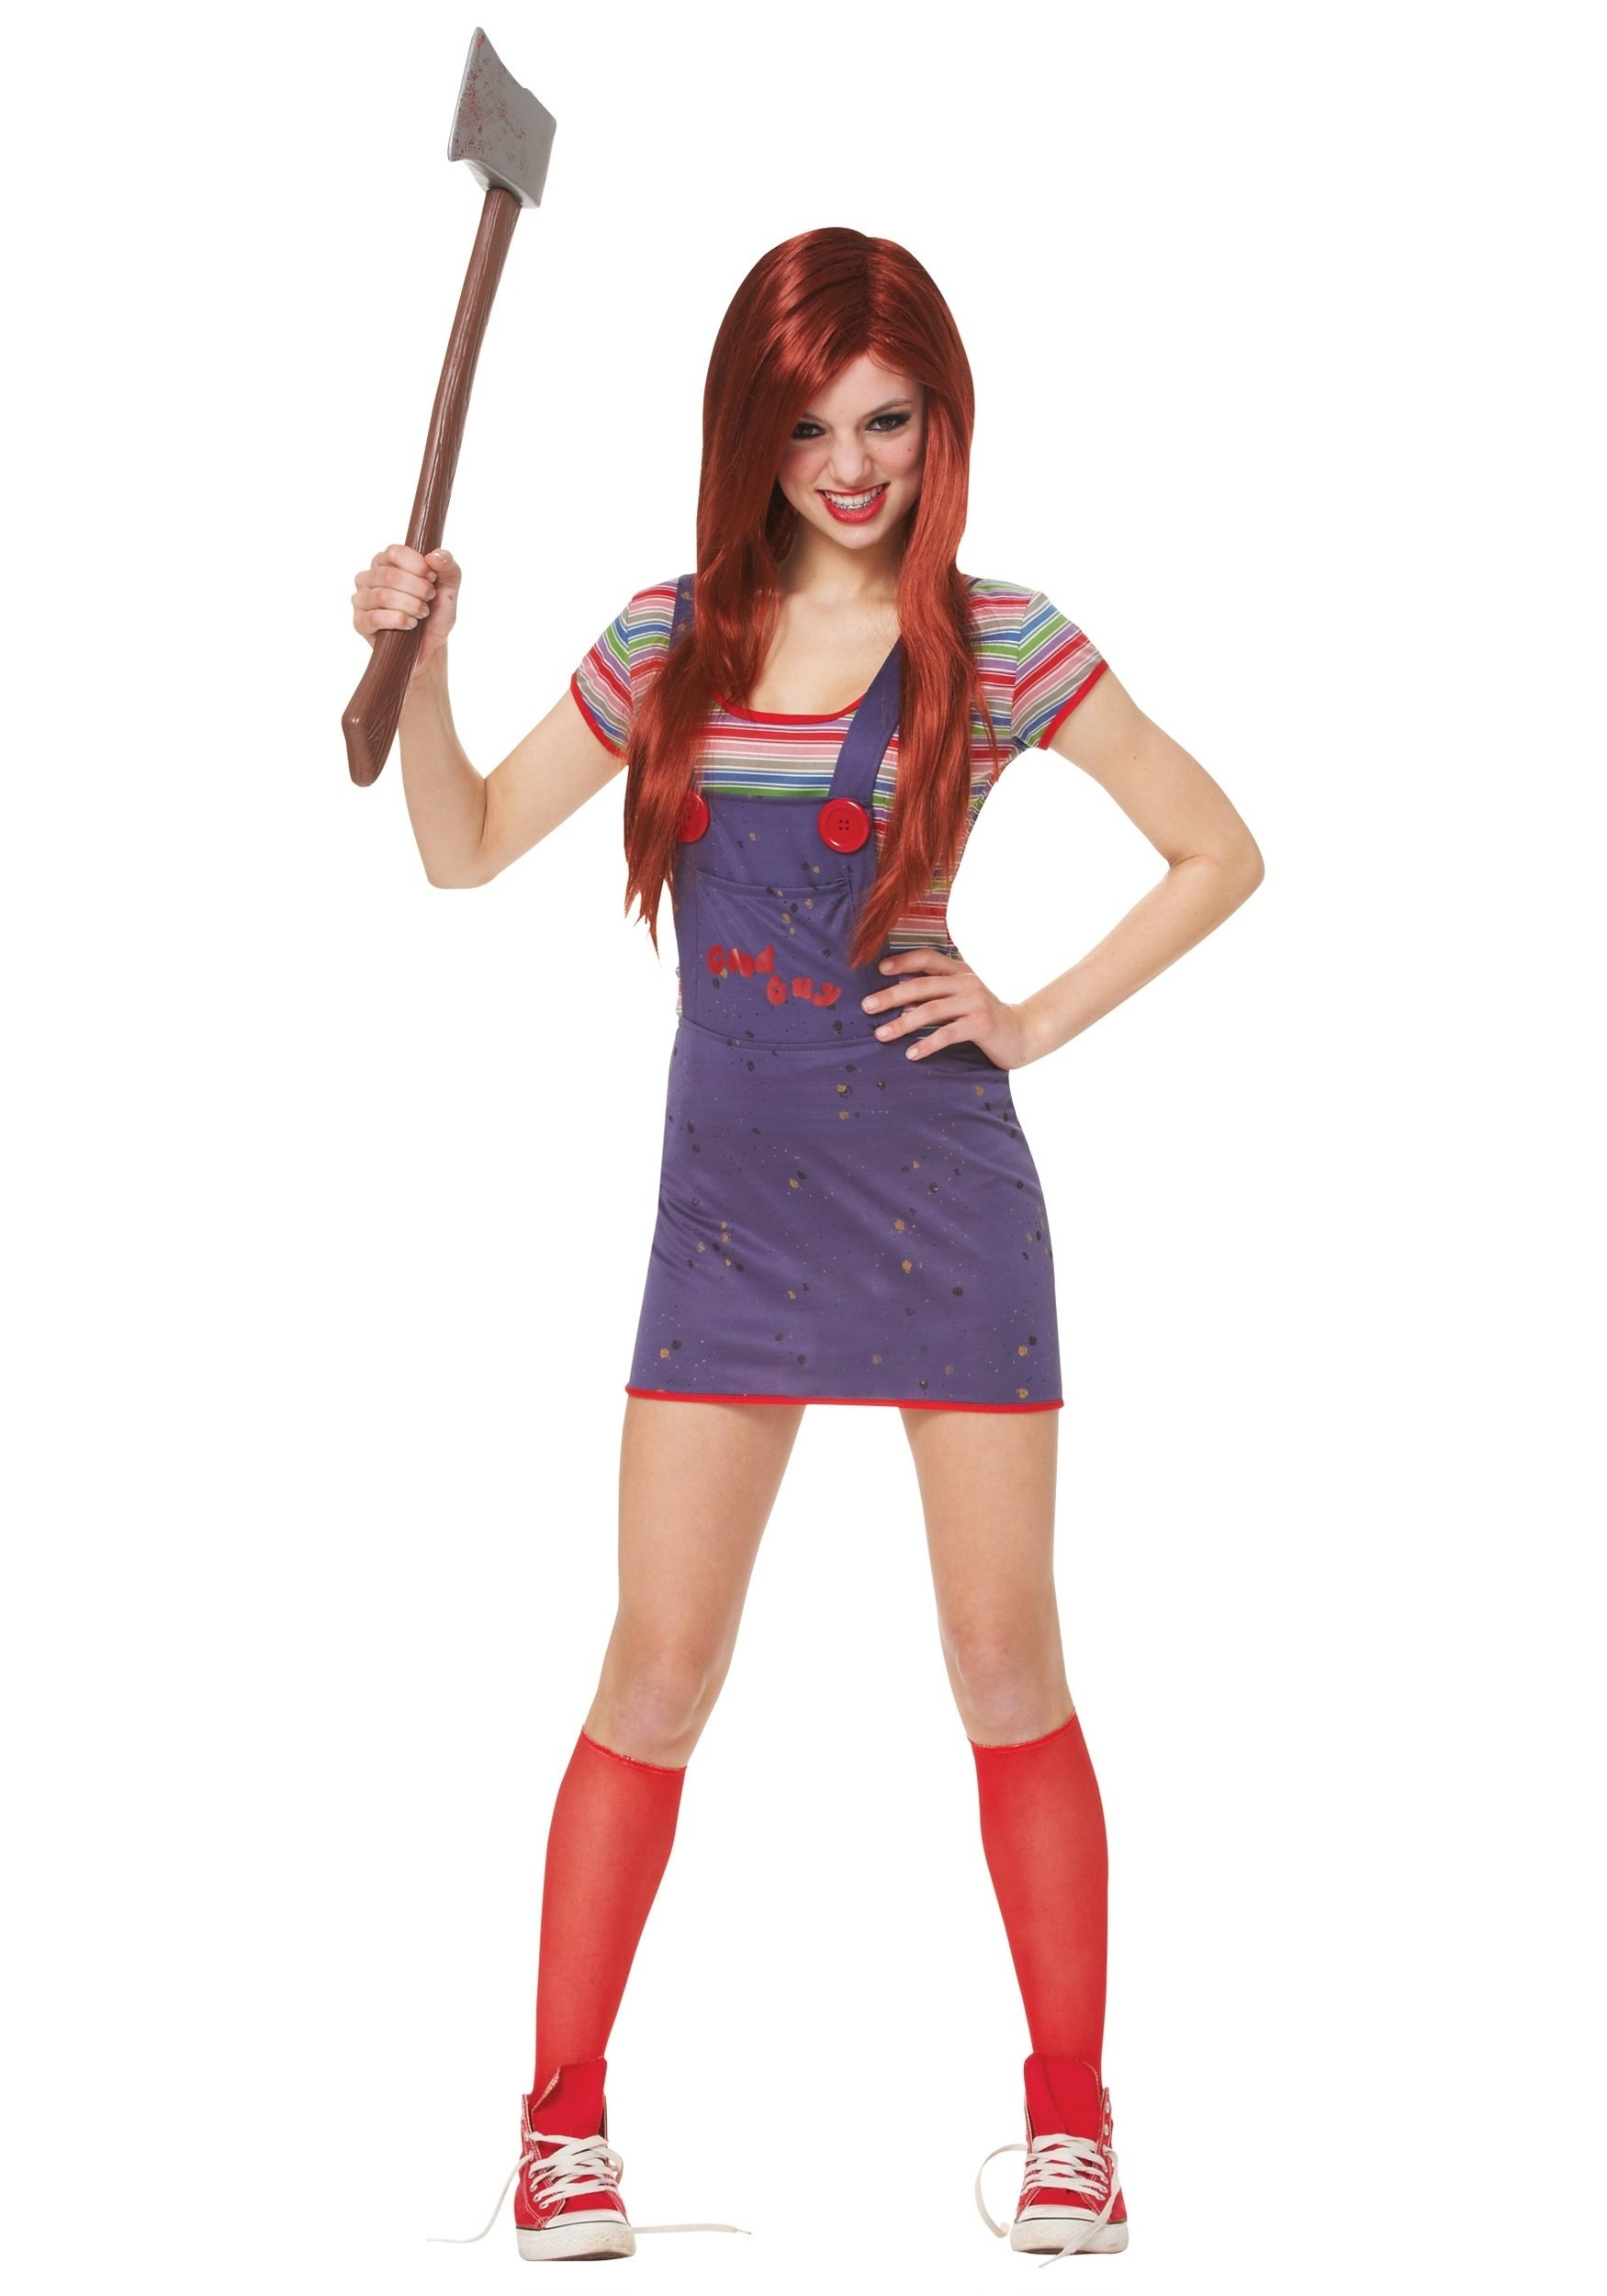 10 Nice Ideas For Halloween Costumes For Girls teen sassy chucky costume 2020